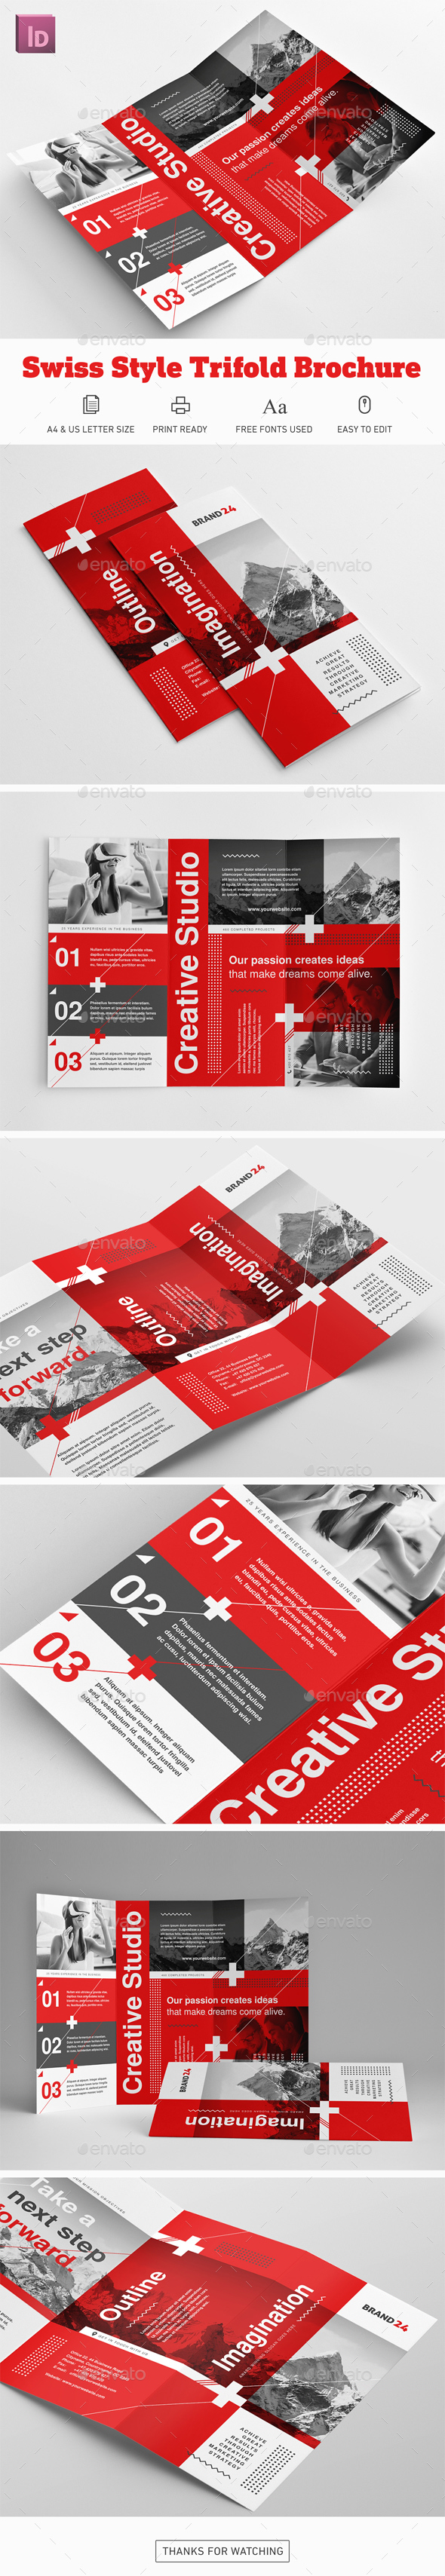 Swiss Style Trifold Brochure - Corporate Brochures